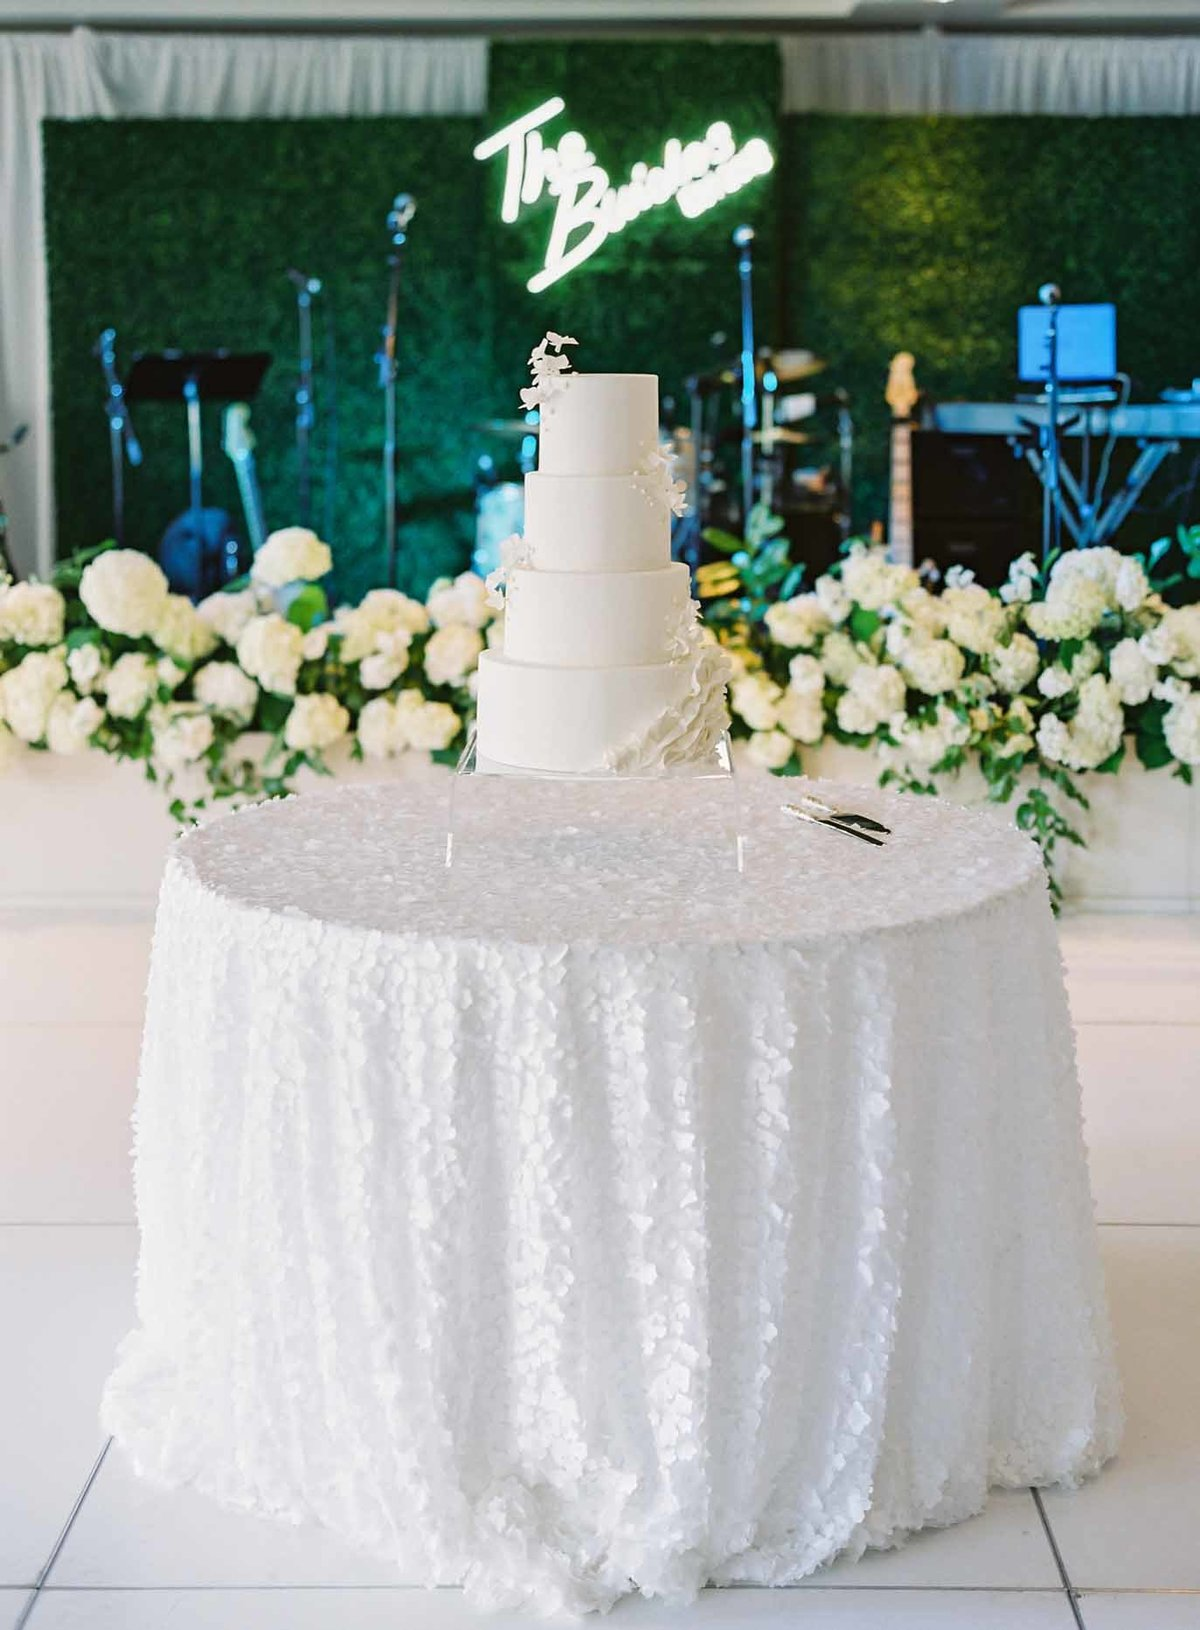 Stunning simple all white tiered wedding cake takes center stage on the dance floor in front of a hedge of white hydrangea.